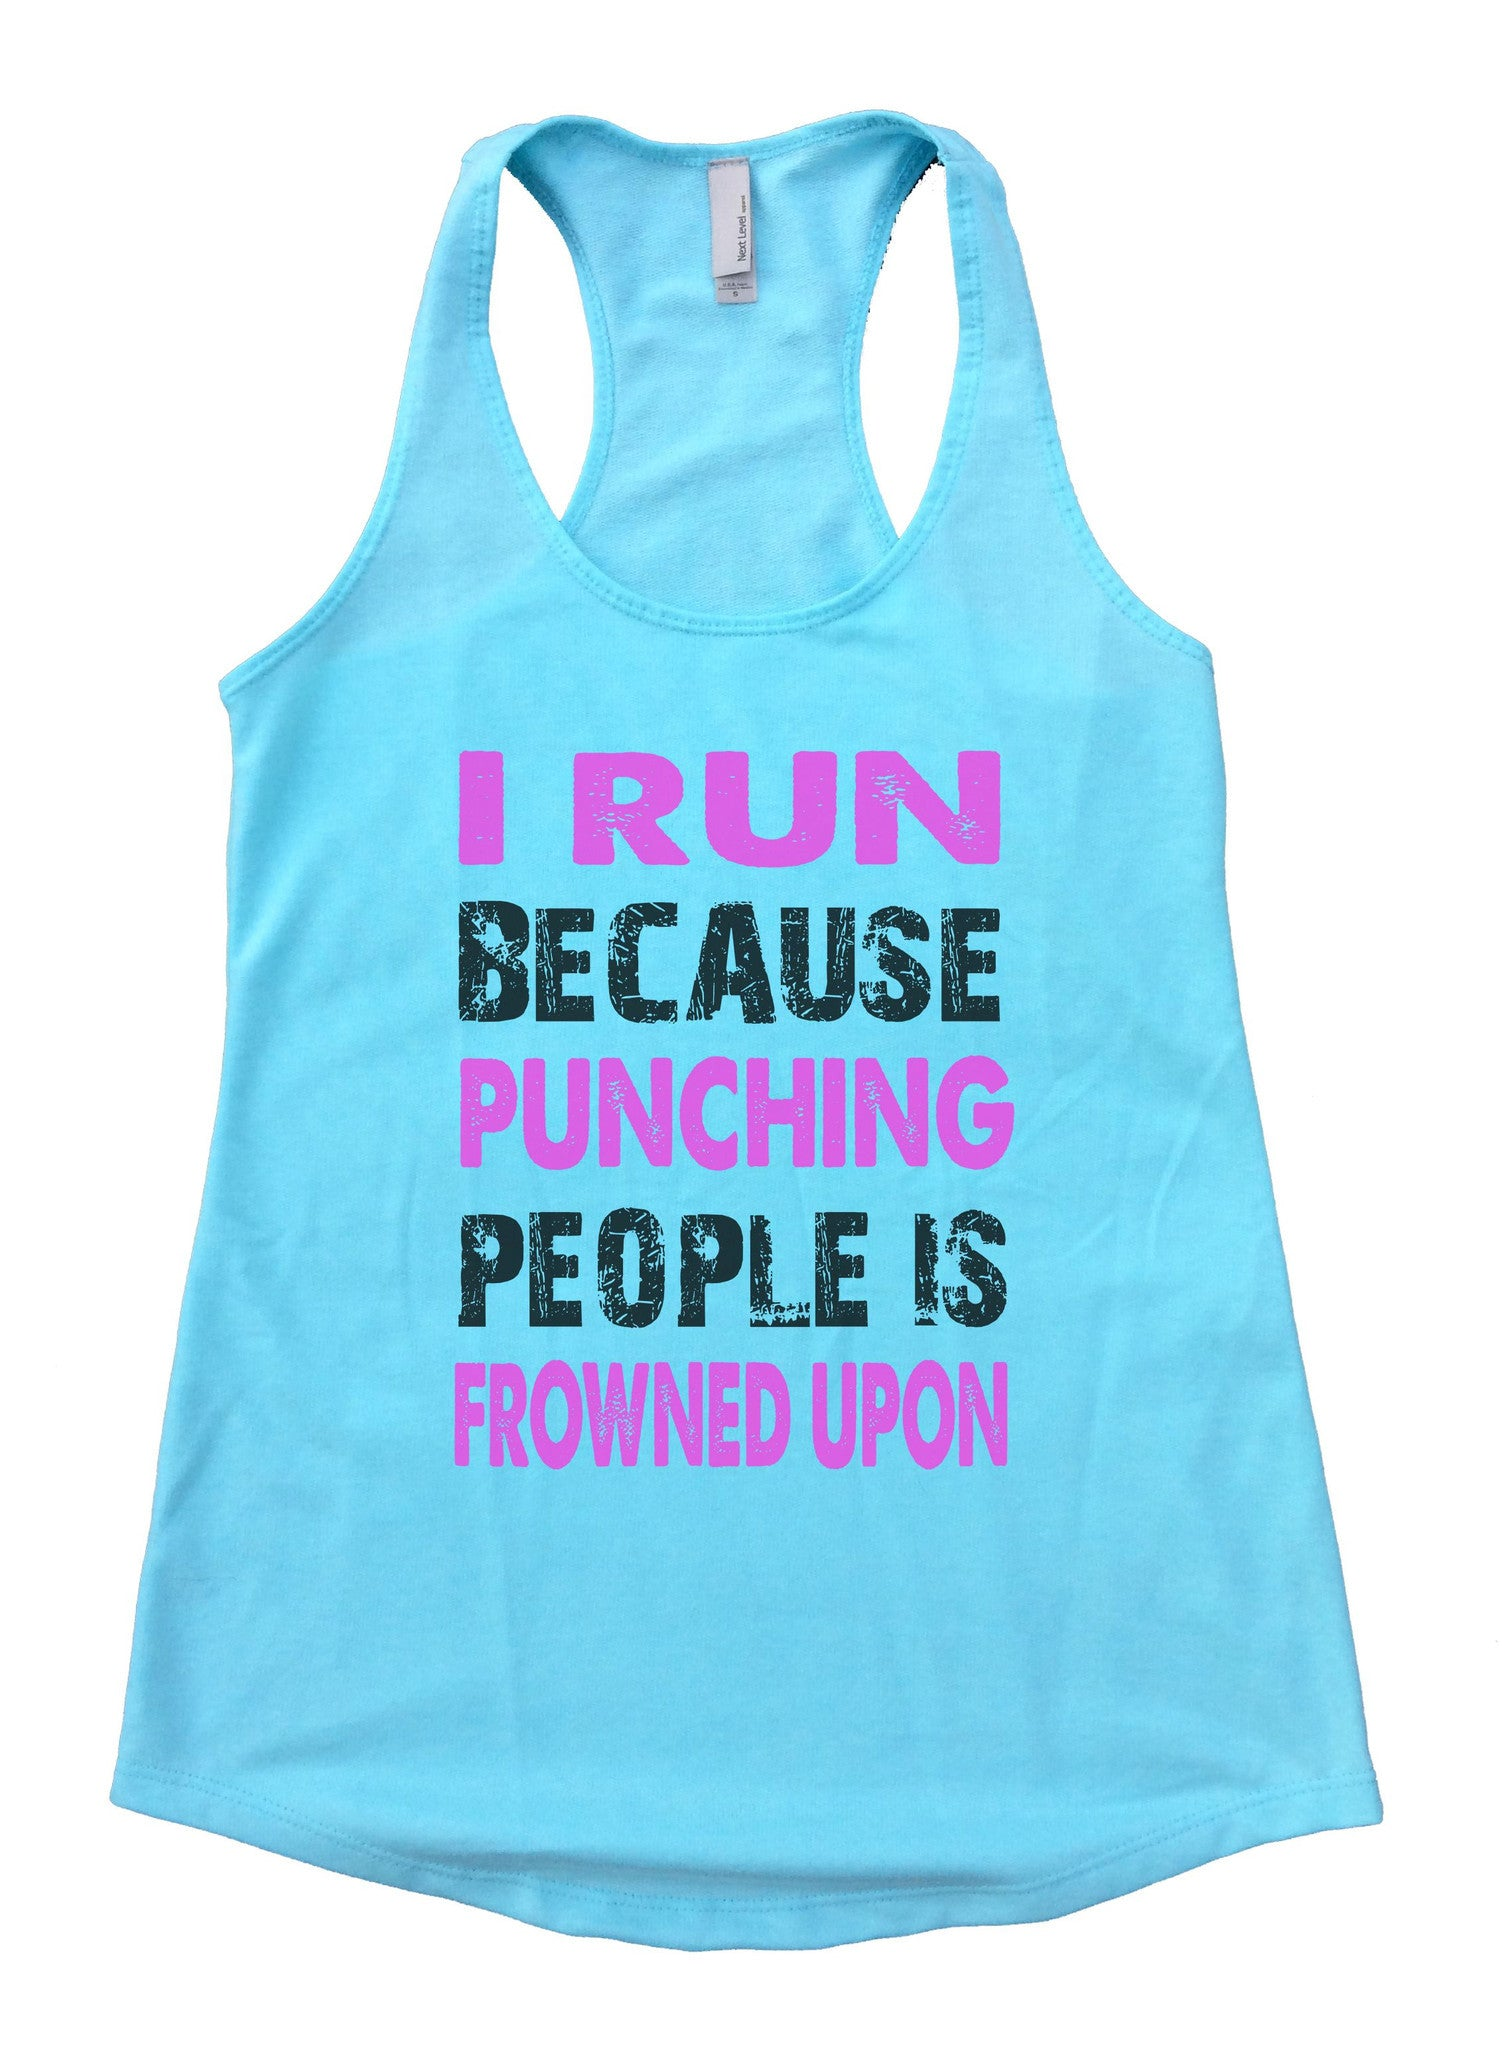 I Run Because Punching People Is Frowned Upon Womens Workout Tank Top F708 - Funny Shirts Tank Tops Burnouts and Triblends  - 1